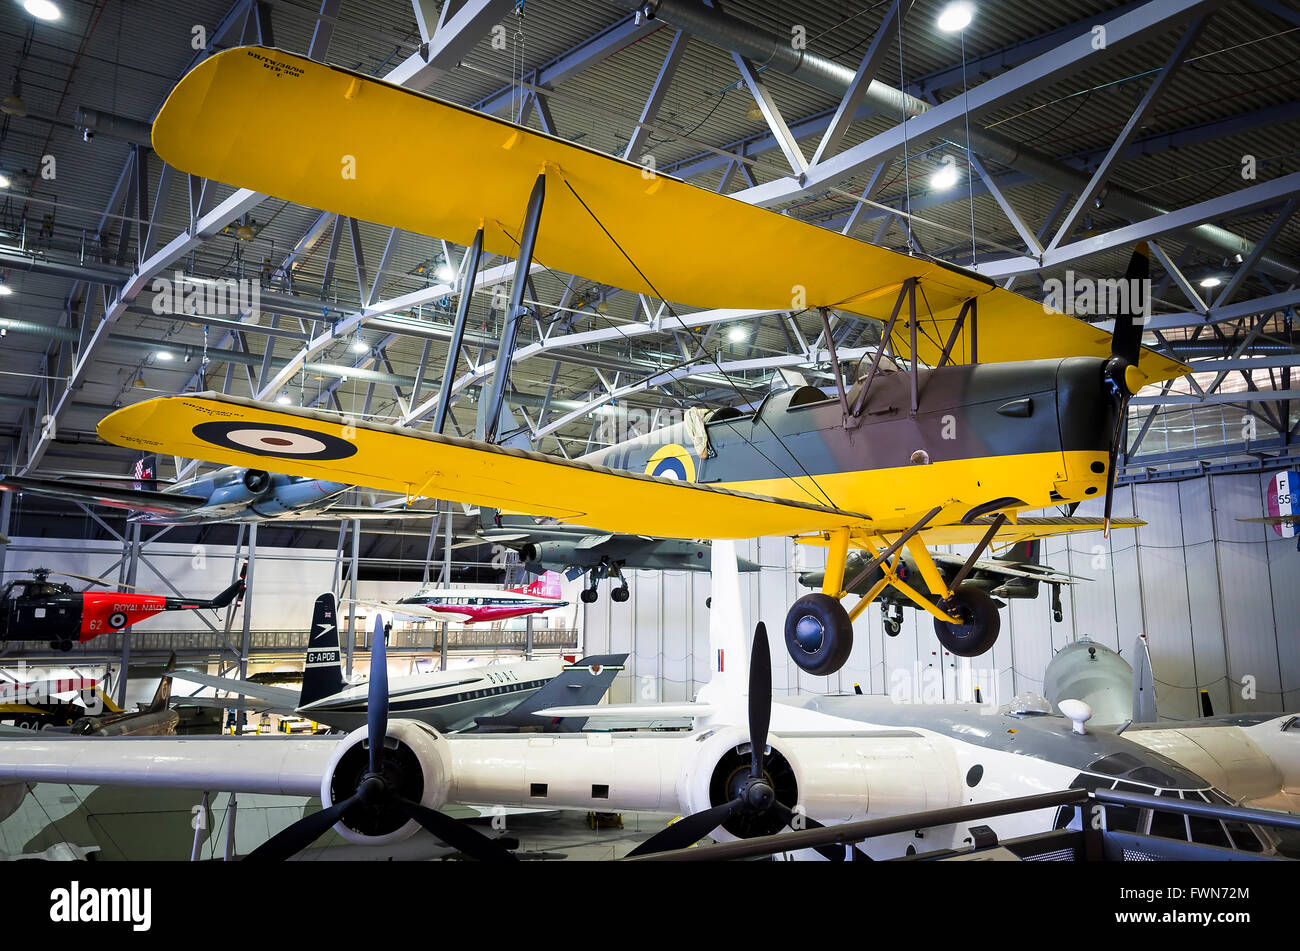 De Havilland Tiger Moth training aircraft from WWII on display at IWM Duxford UK - Stock Image